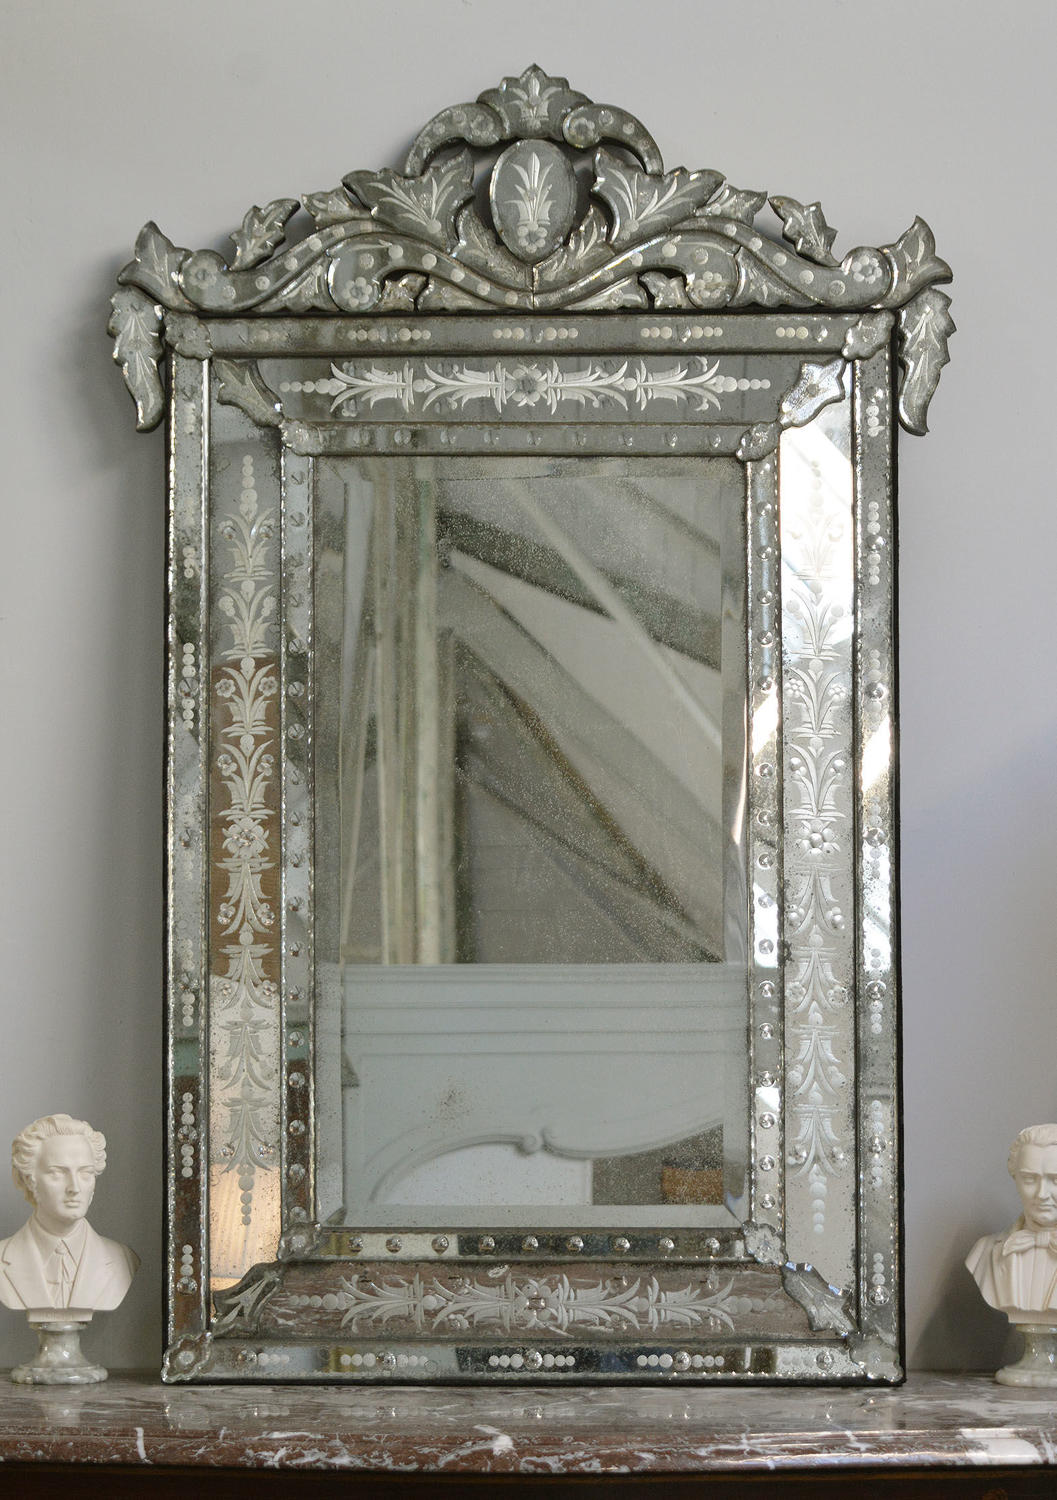 Antique Venetian Cushion Mirror c1910-20